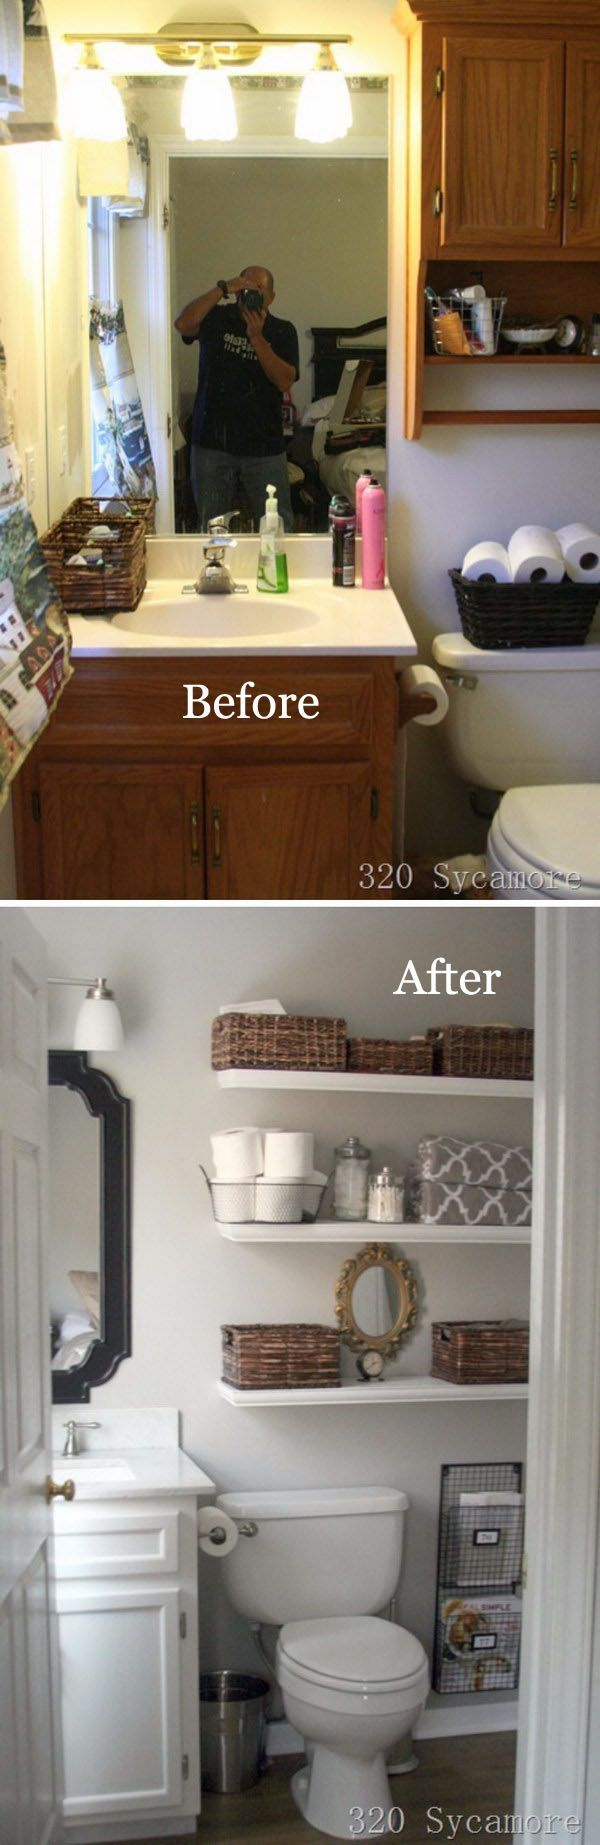 Bathroom designs for small master bathrooms - Before And After 20 Awesome Bathroom Makeovers Shelves Over Toilet Bathroom Shelvesdownstairs Bathroommaster Bathroomssmall